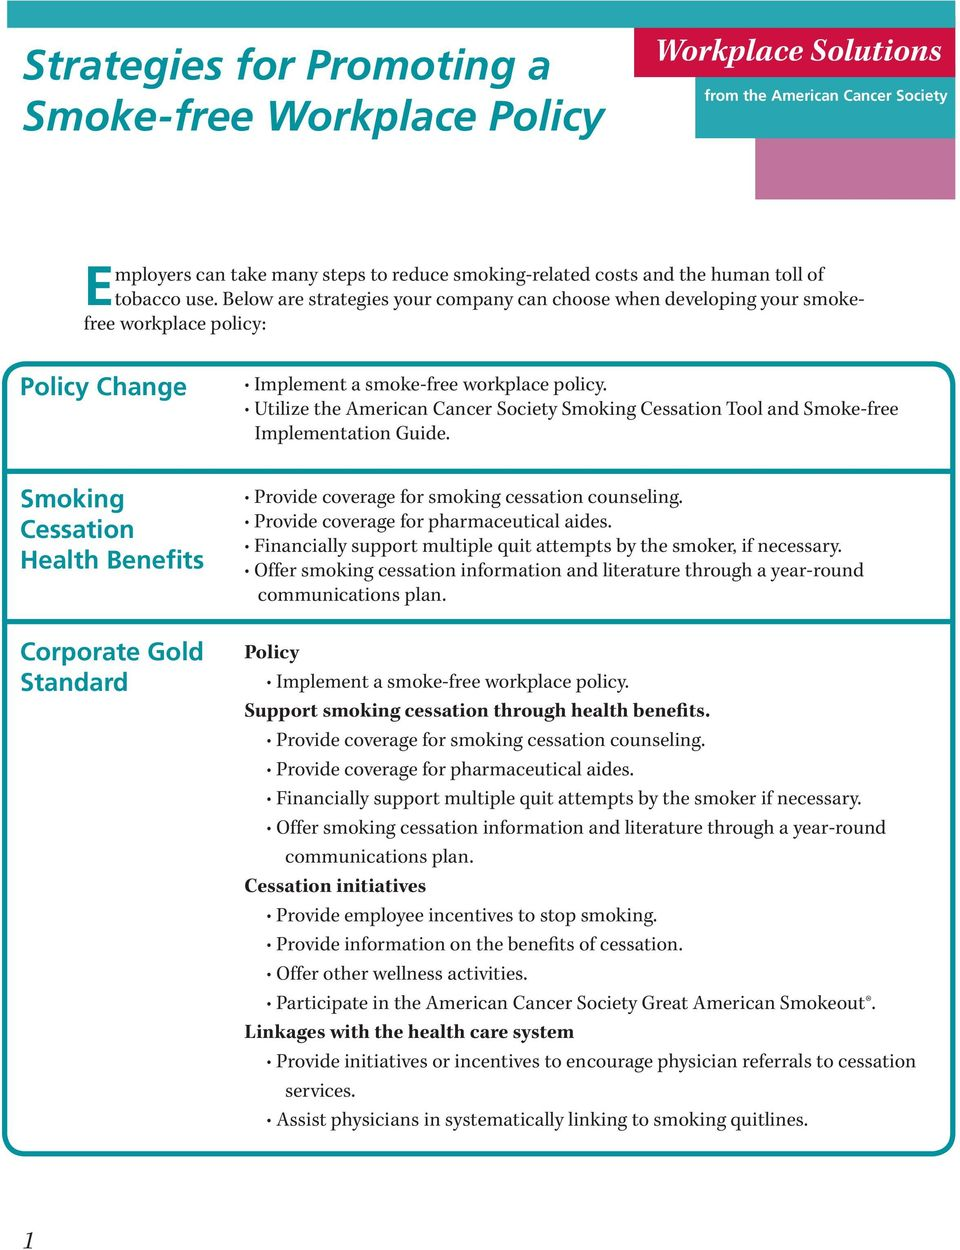 policy. Utilize the American Cancer Society Smoking Cessation Tool and Smoke-free Implementation Guide. Provide coverage for smoking cessation counseling. Provide coverage for pharmaceutical aides.